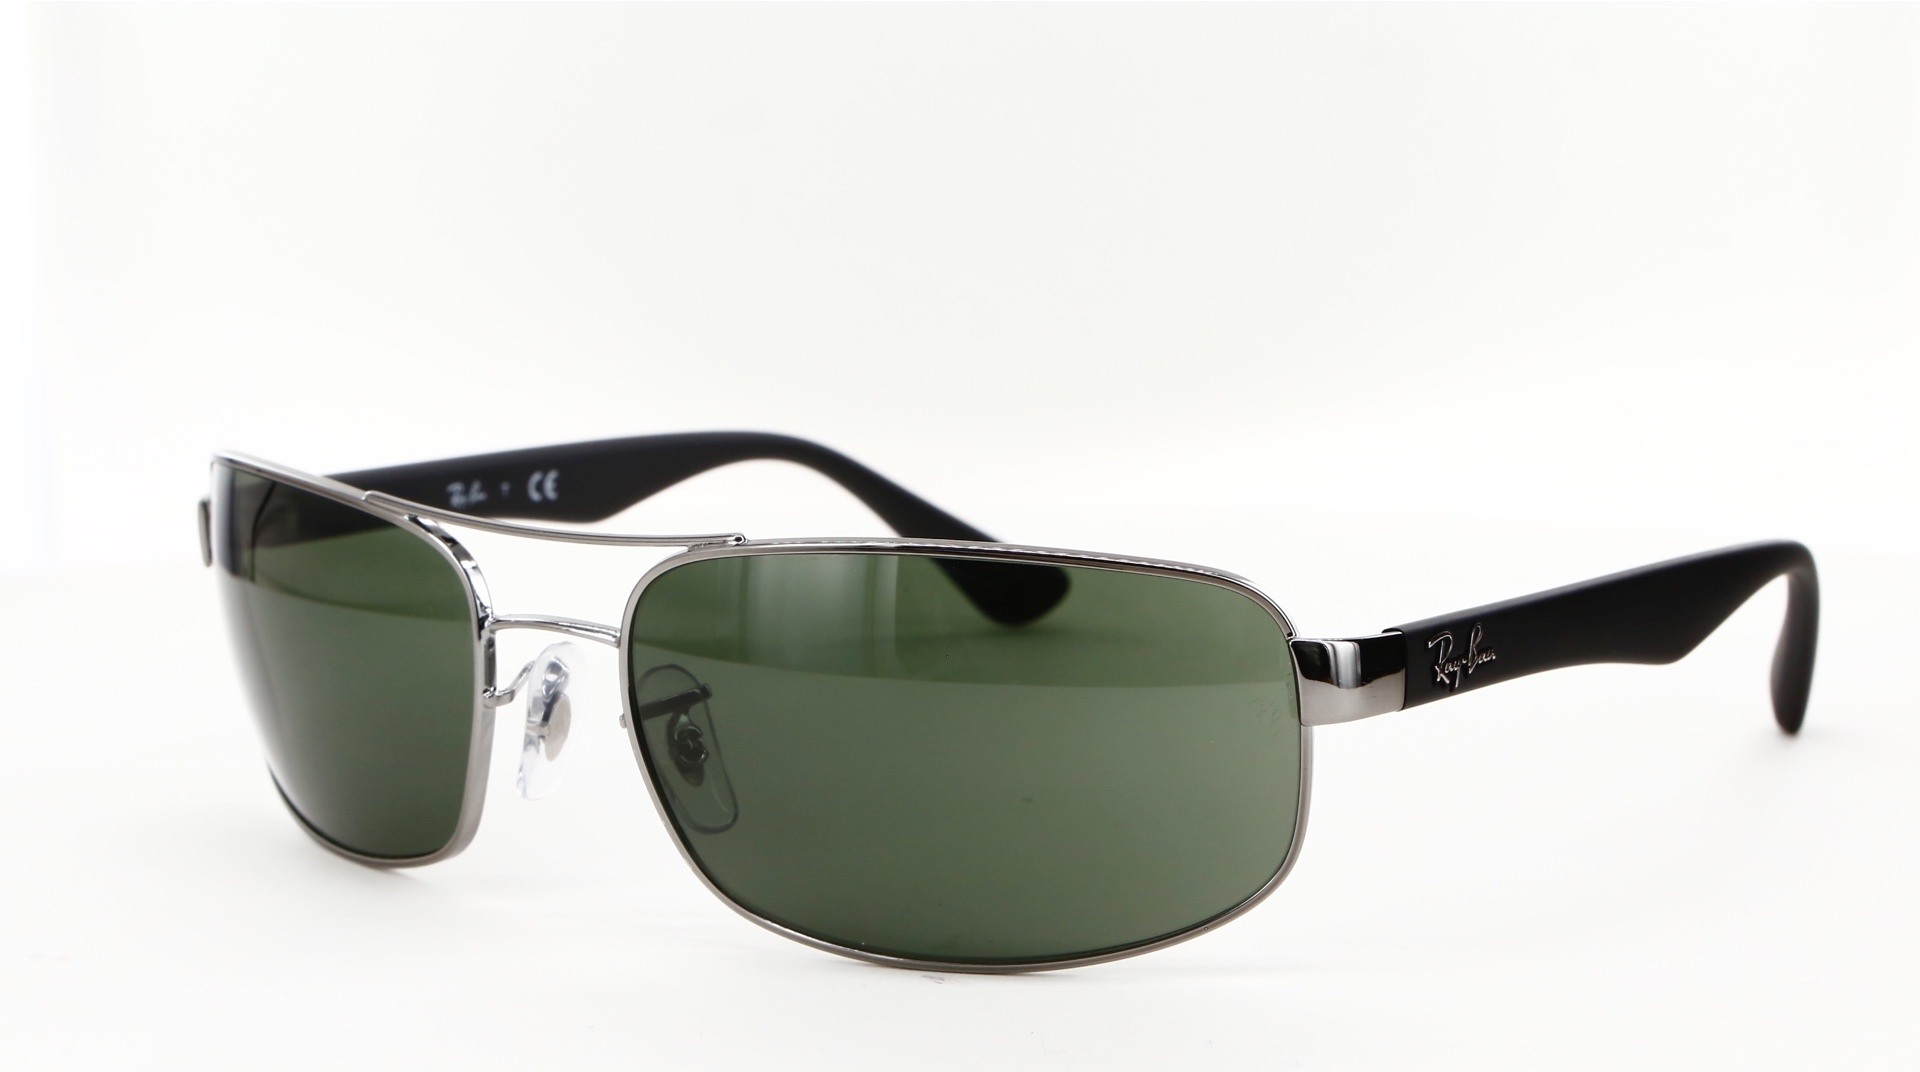 Ray-Ban - ref: 62843